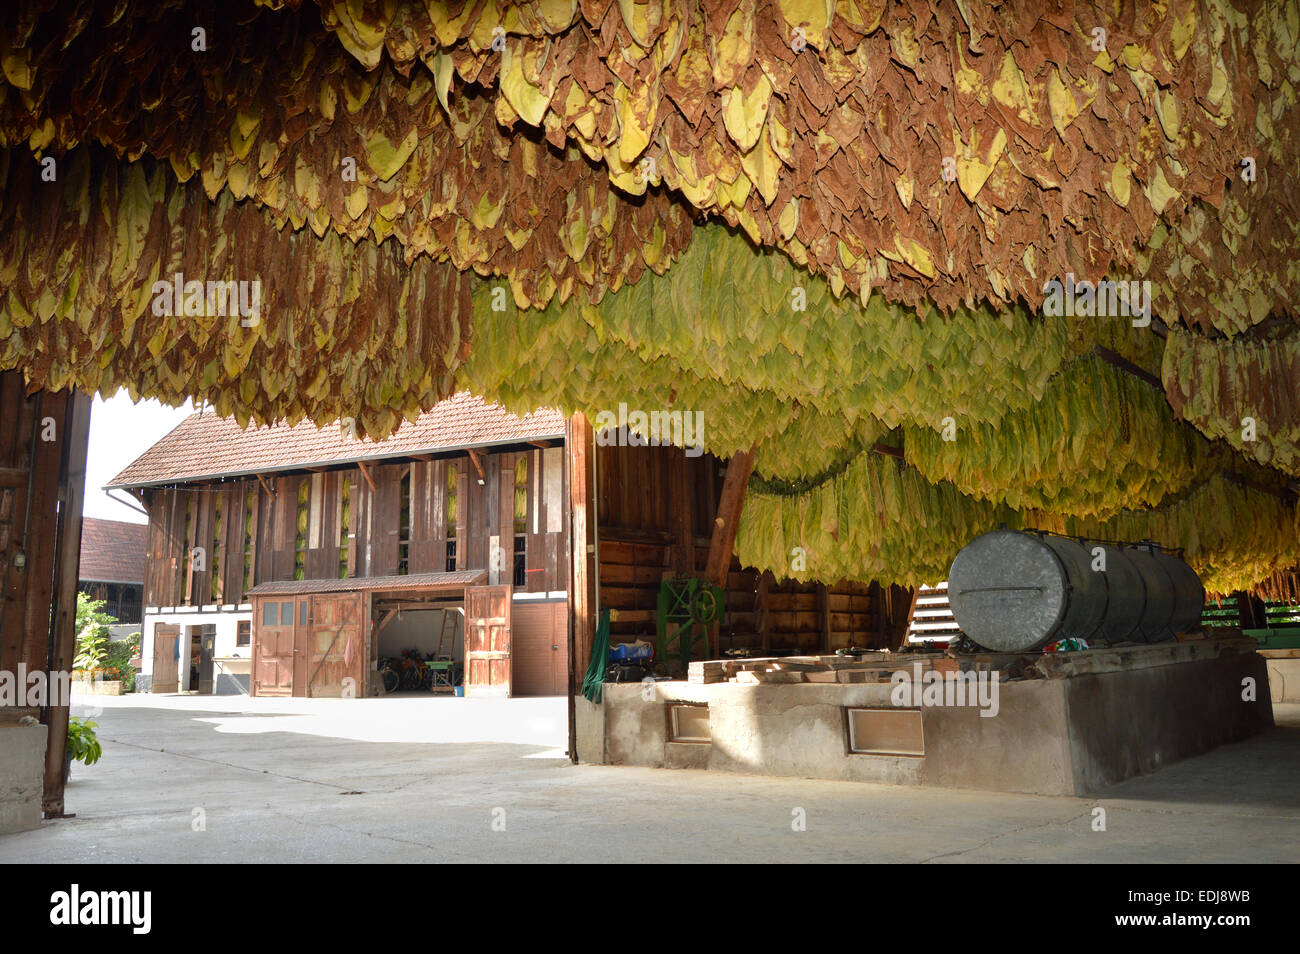 Inside a barn with drying tobacco leaves on timbered farm in the Alsace, France - Stock Image